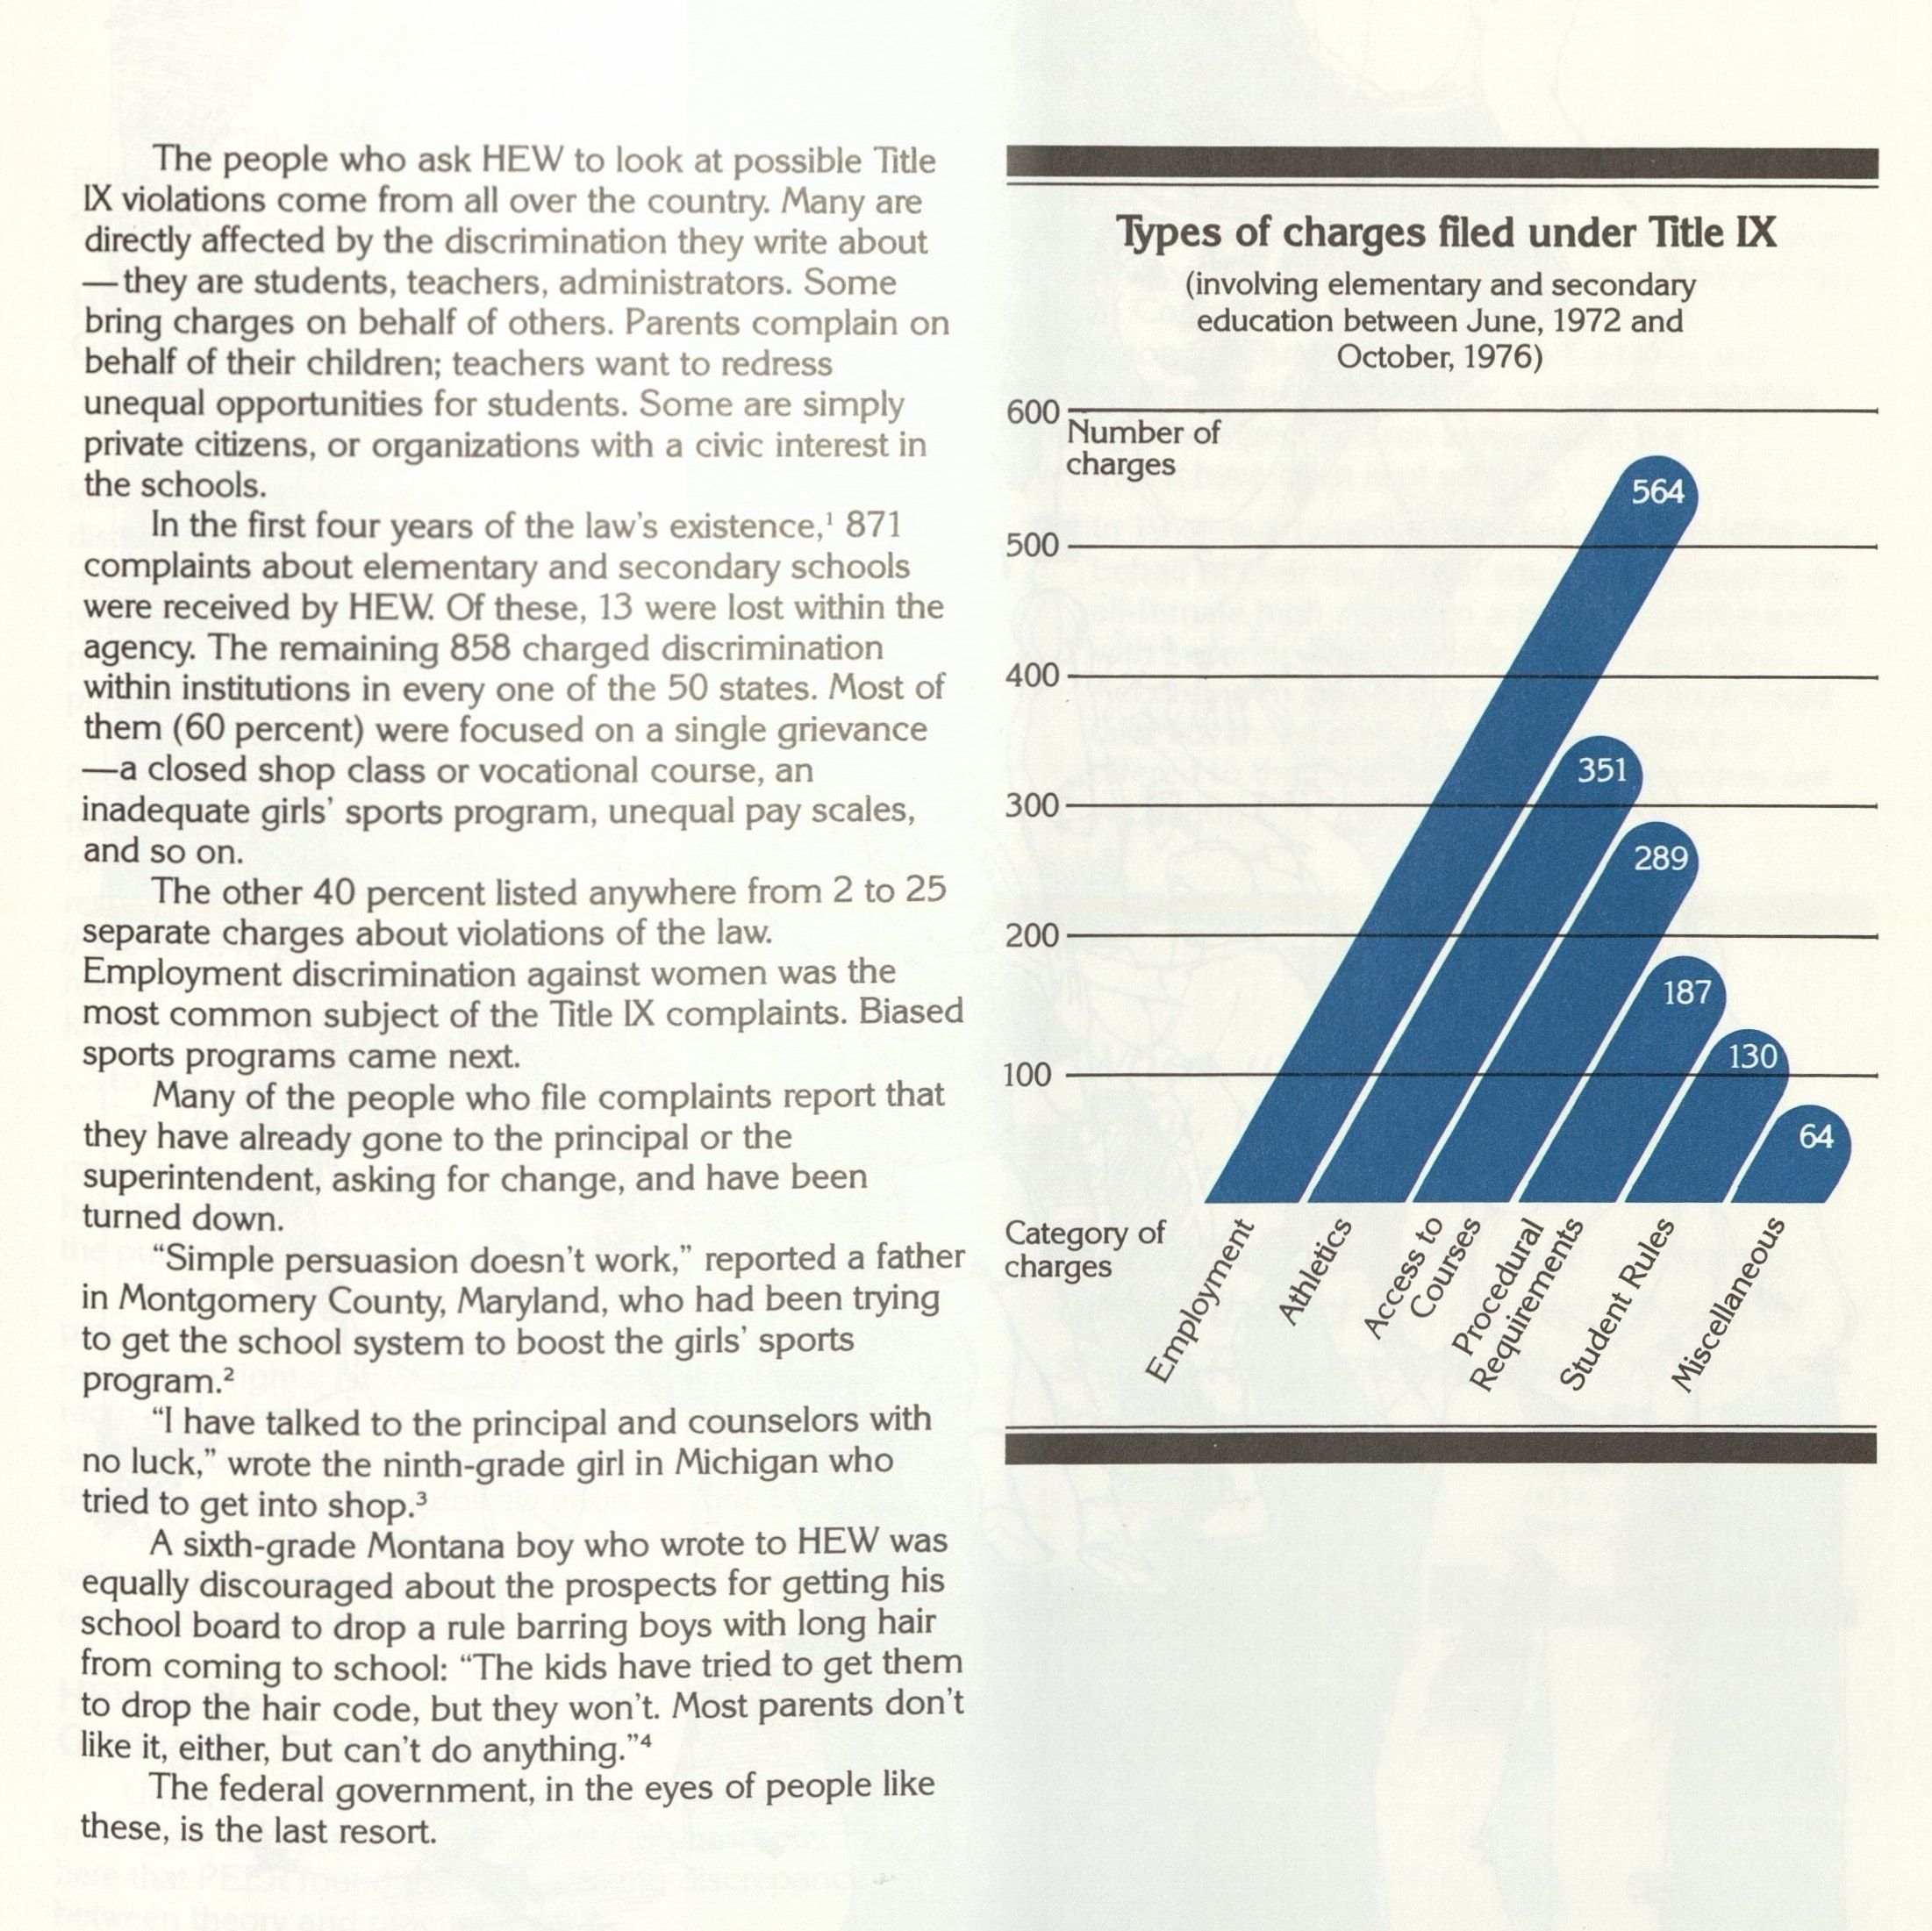 A pamphlet that displays the types of charges filed under Title IX in elementary and secondary education between June 1972 to October 1976. The categories of charges are: Employment (564), Athletics (351), Access to Courses (289), Procedural Requirements (187), Student Rules (130), Miscellaneous (64).